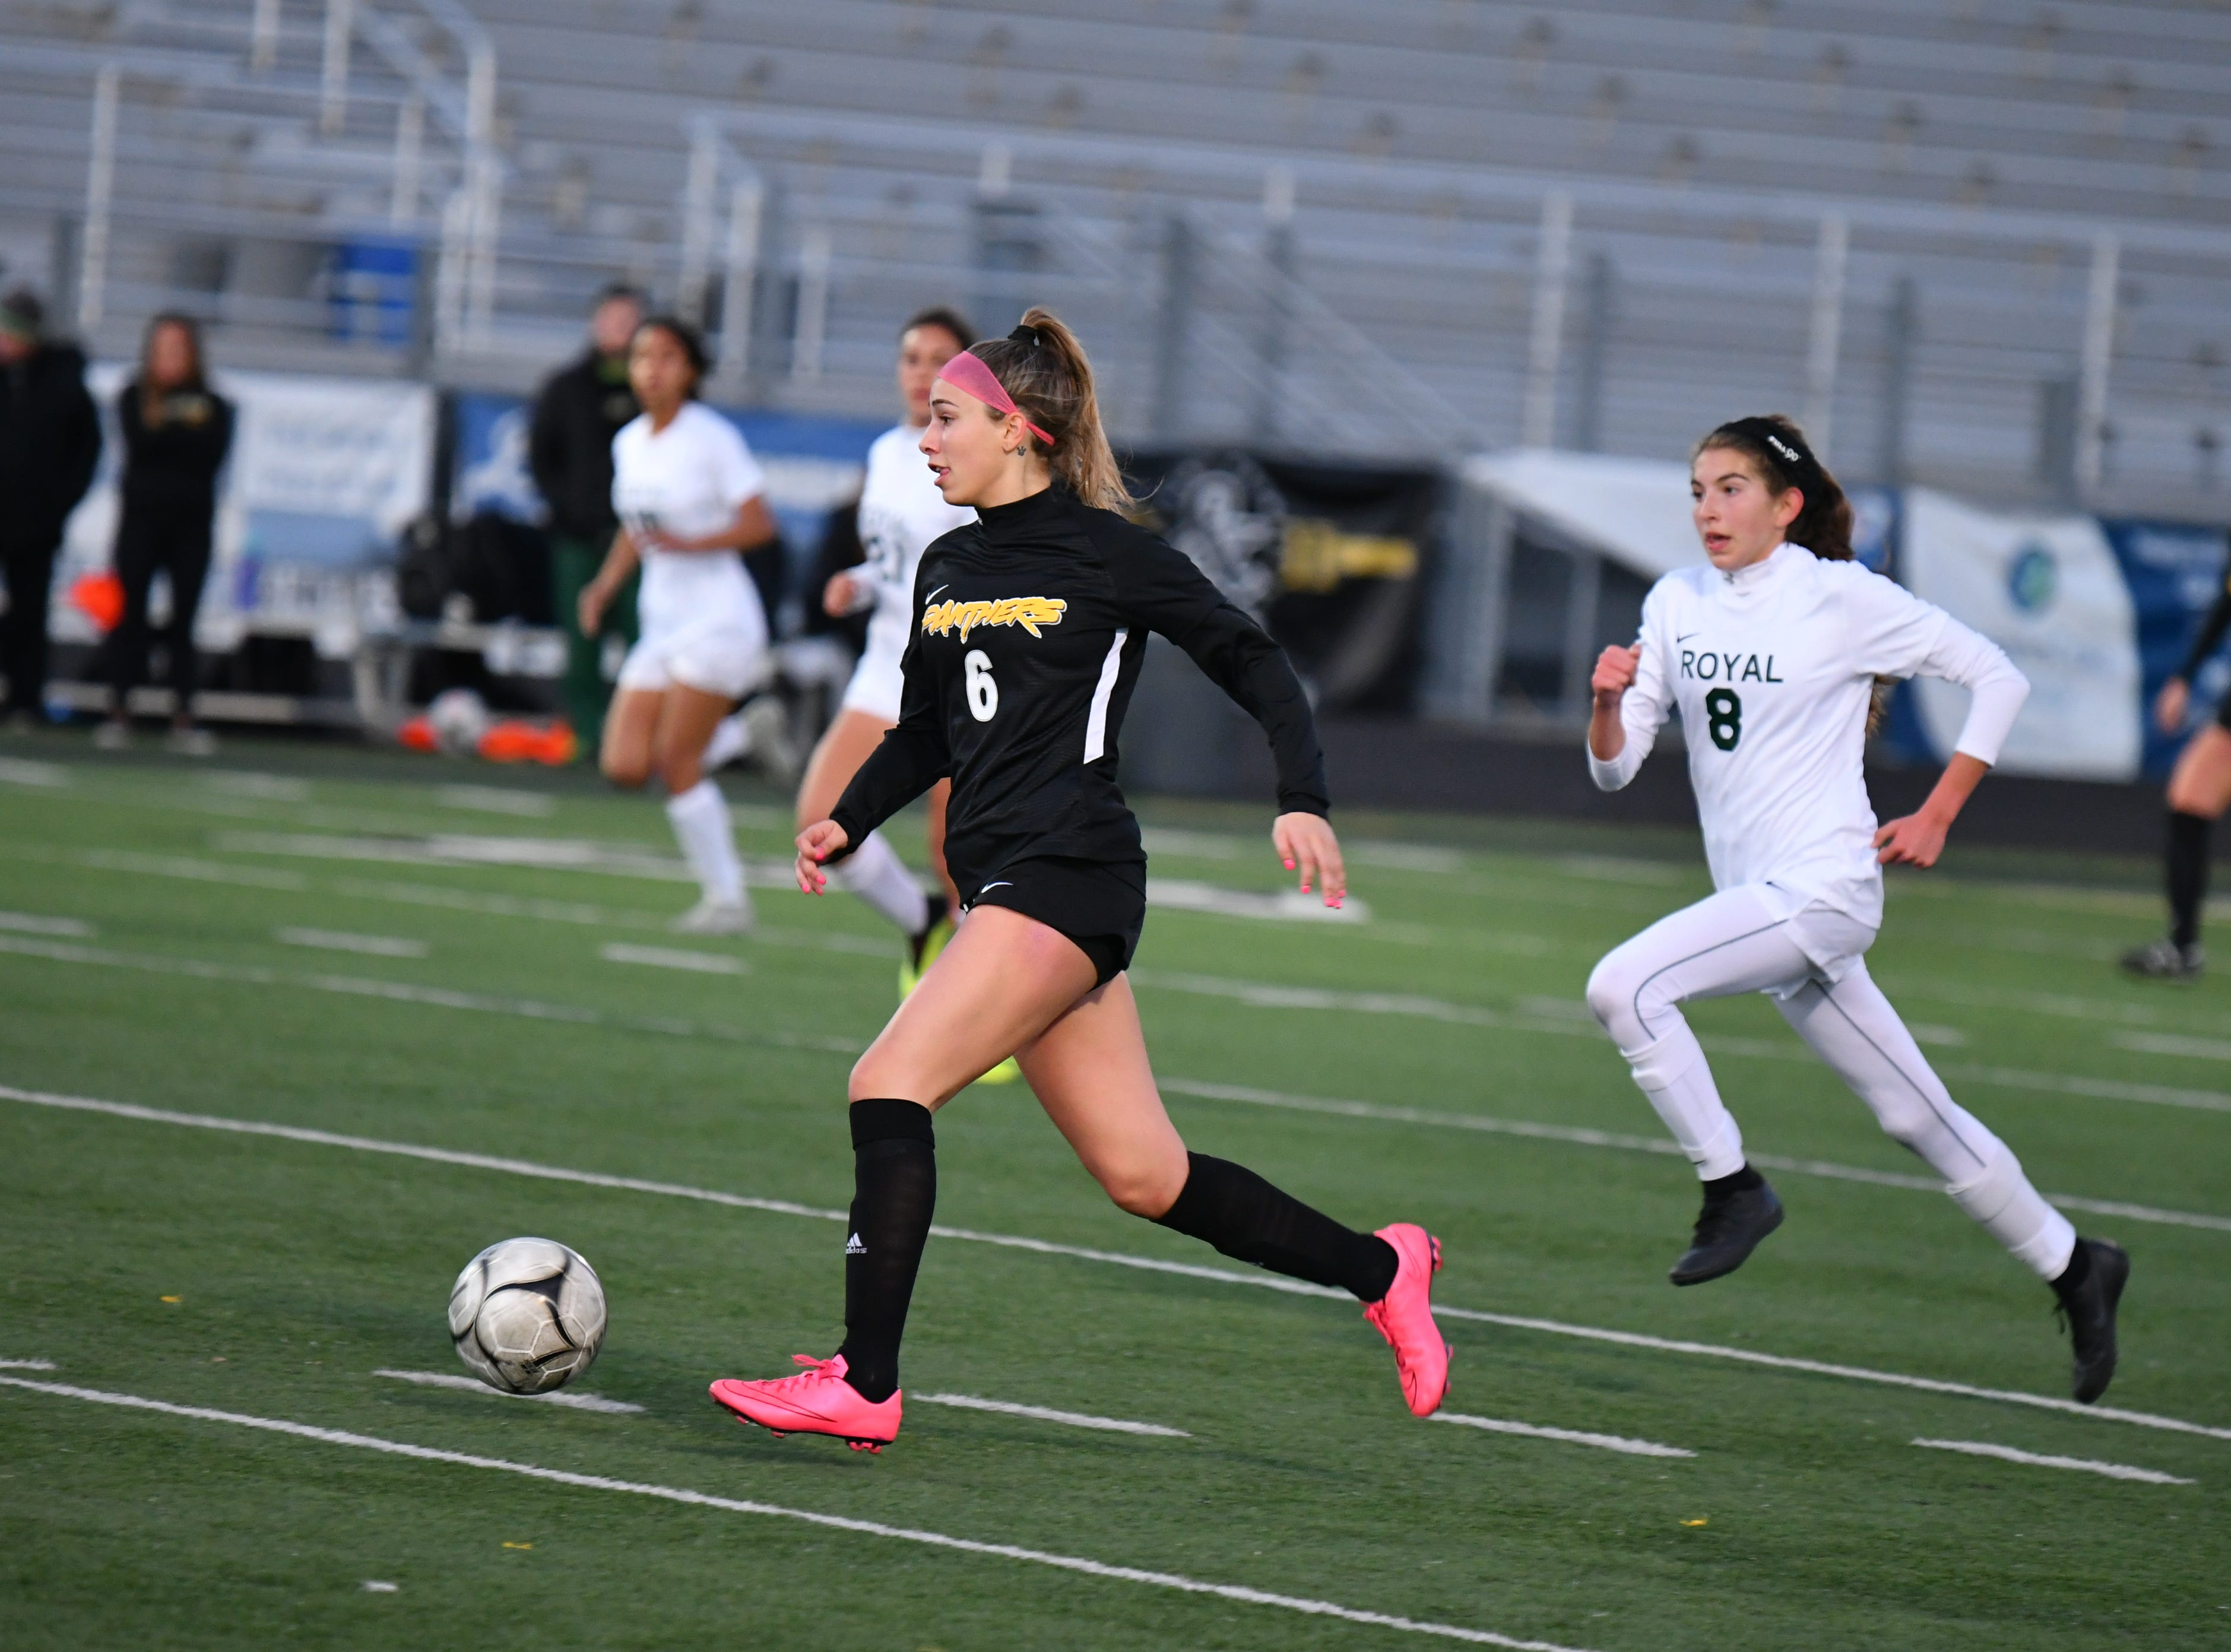 Newbury Park senior Fiona Marangola is chased by Royal freshman Avery Neri on Wednesday in the first round of the CIF-Southern Section Division 2 playoffs at Newbury Park High. Newbury Park won, 3-0.